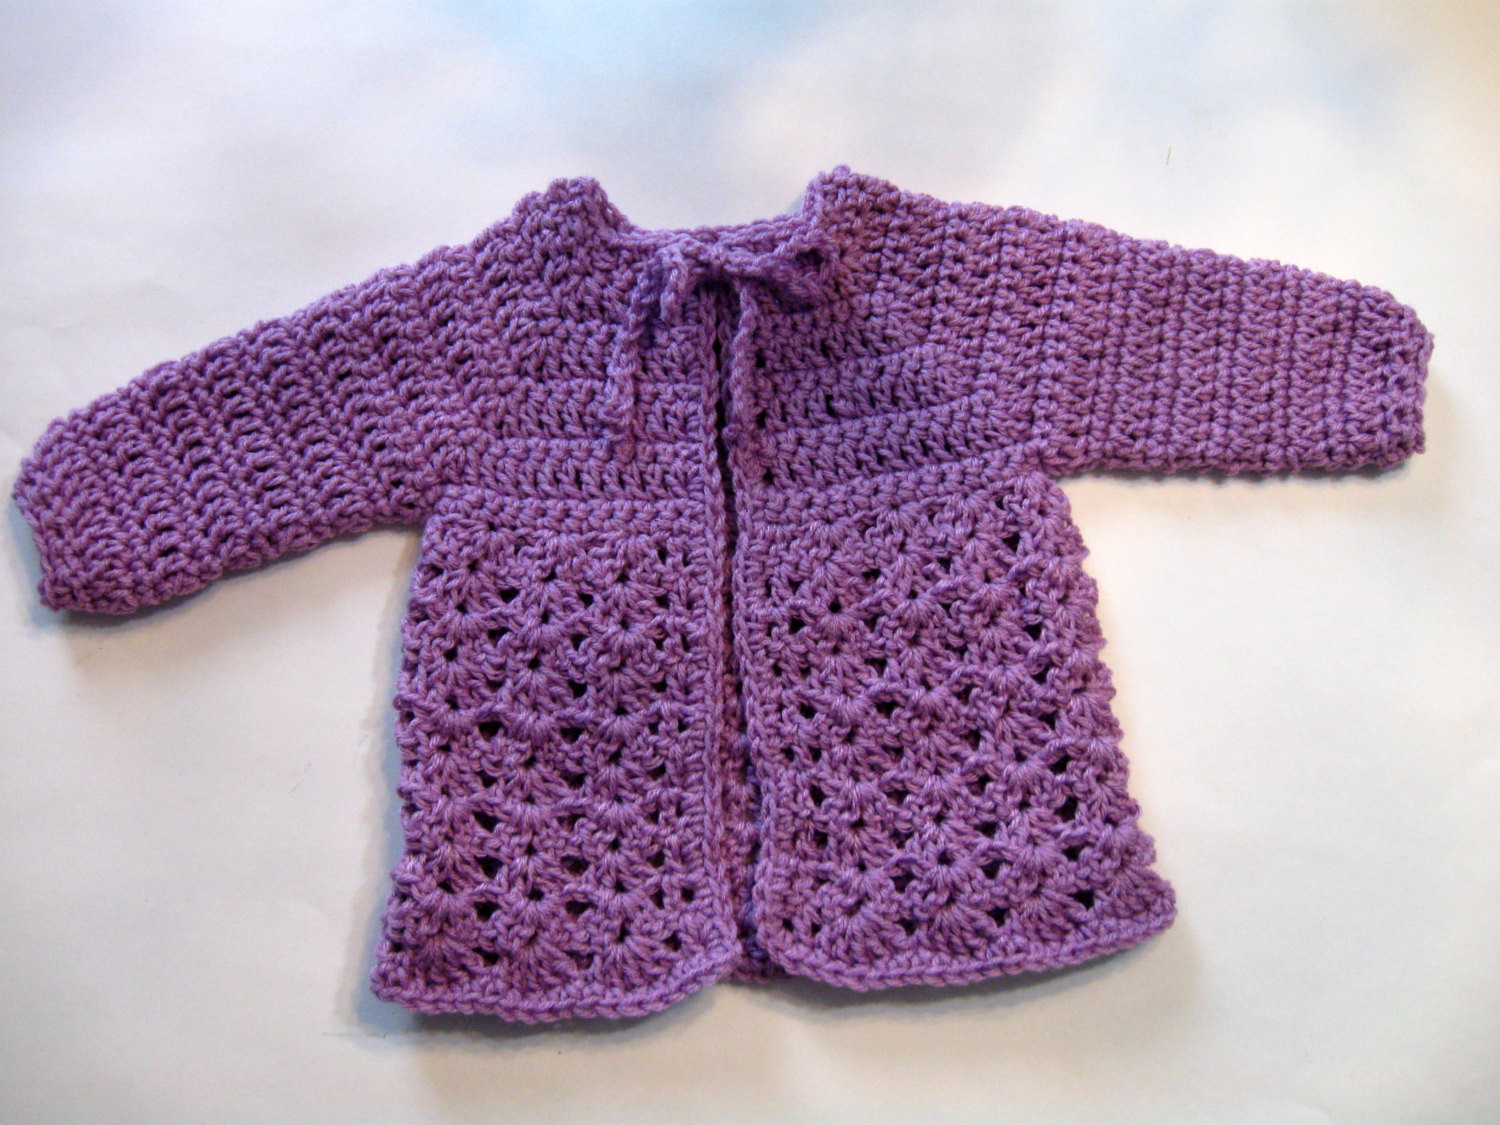 Free Crochet Patterns for Babies Cardigans Fresh Simple Crochet Baby Sweater Of Superb 45 Models Free Crochet Patterns for Babies Cardigans